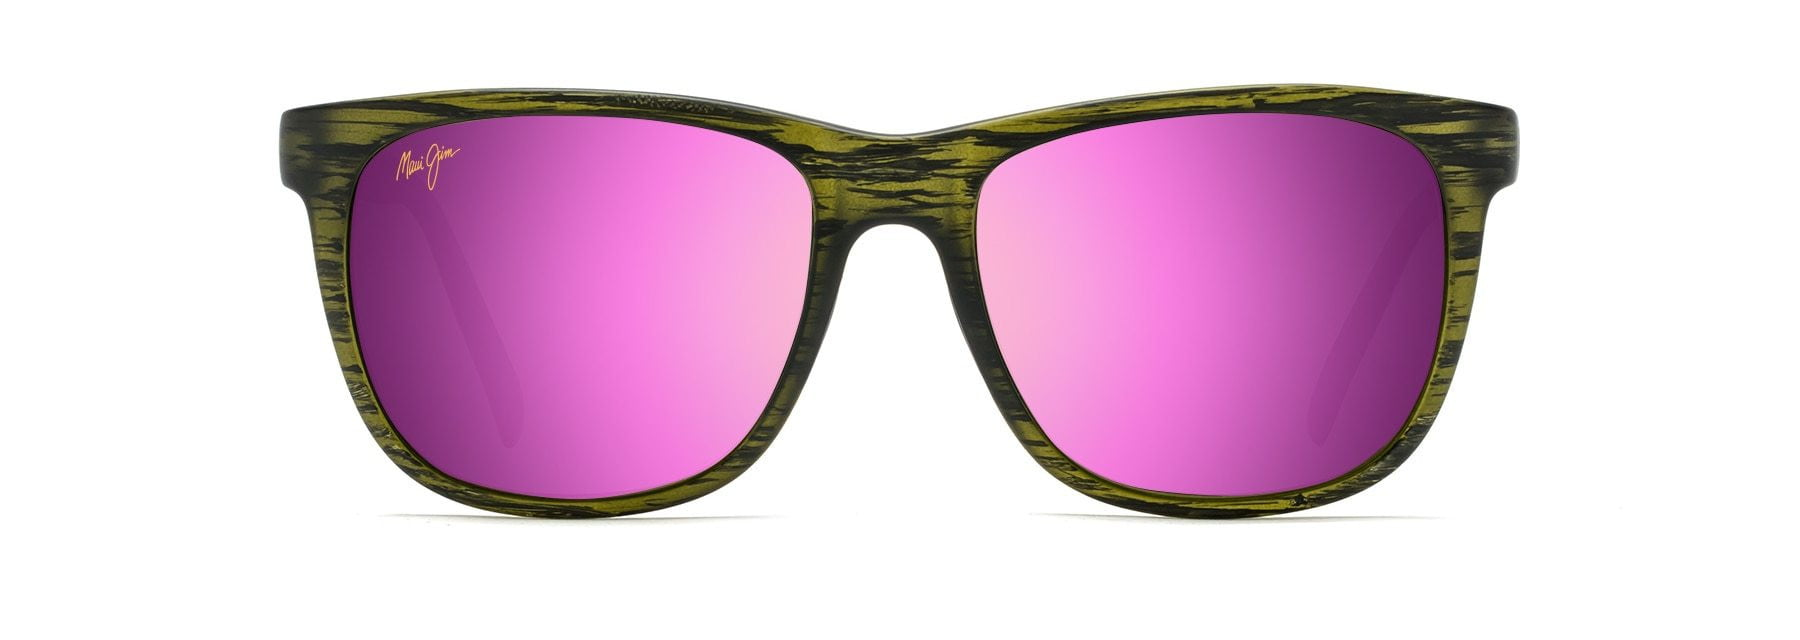 MyMaui Tail Slide MM740-045 Sunglasses